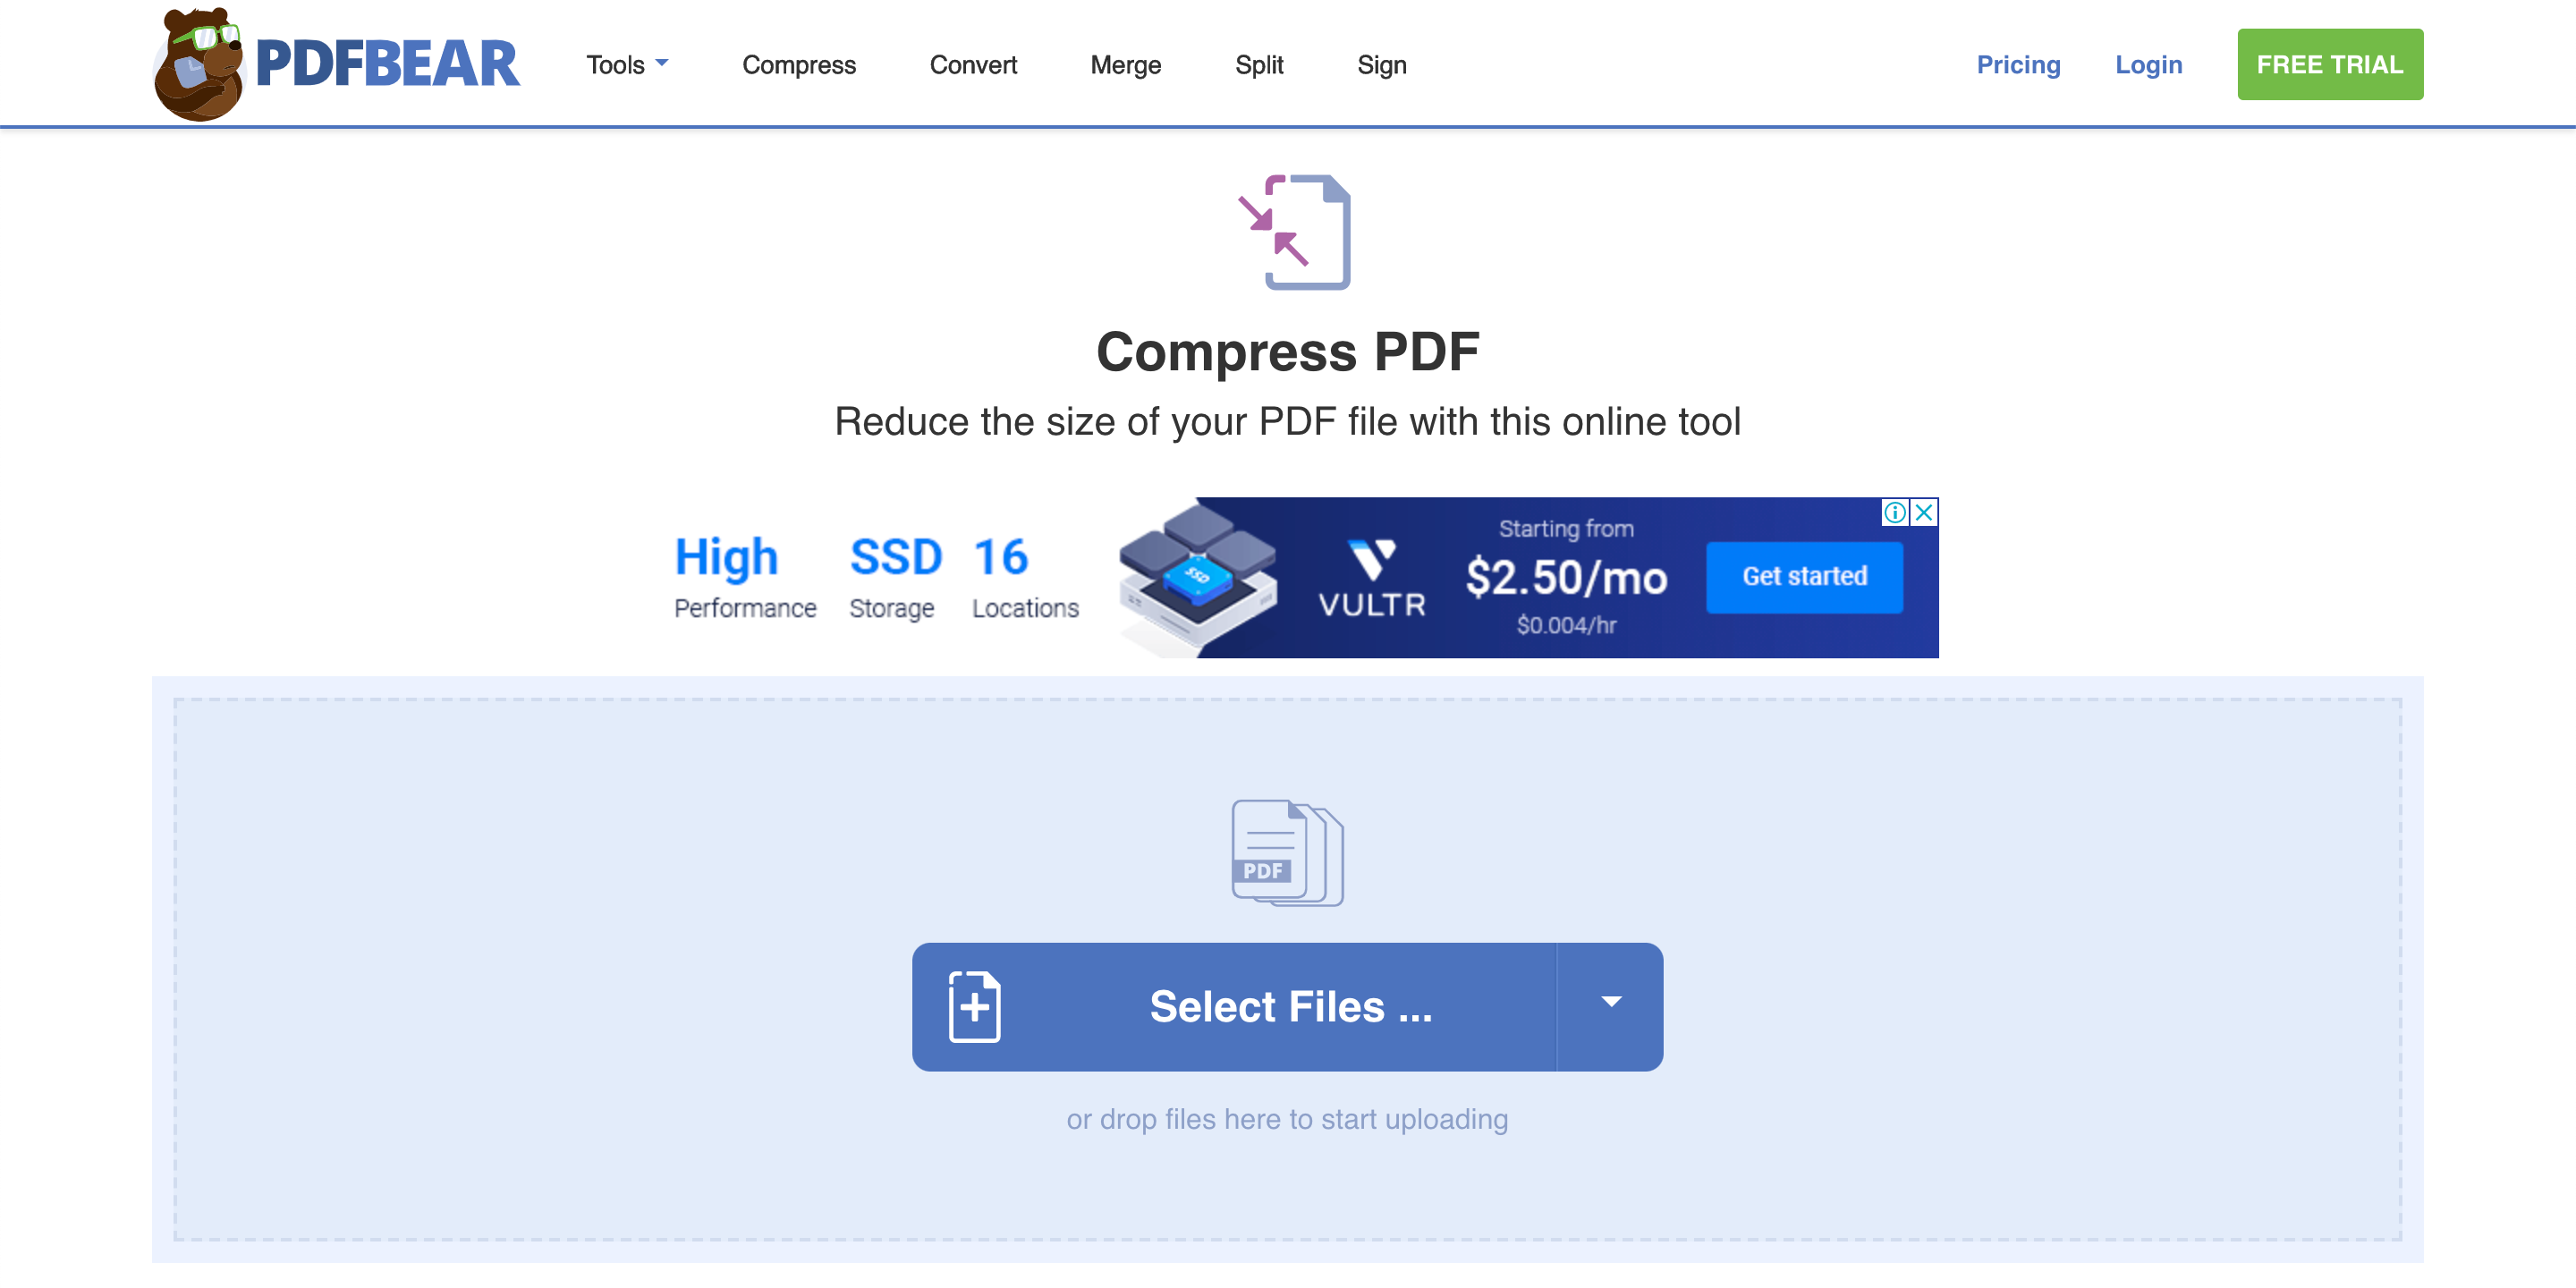 PDFBear Guide: An Online Tool For Your Document Needs